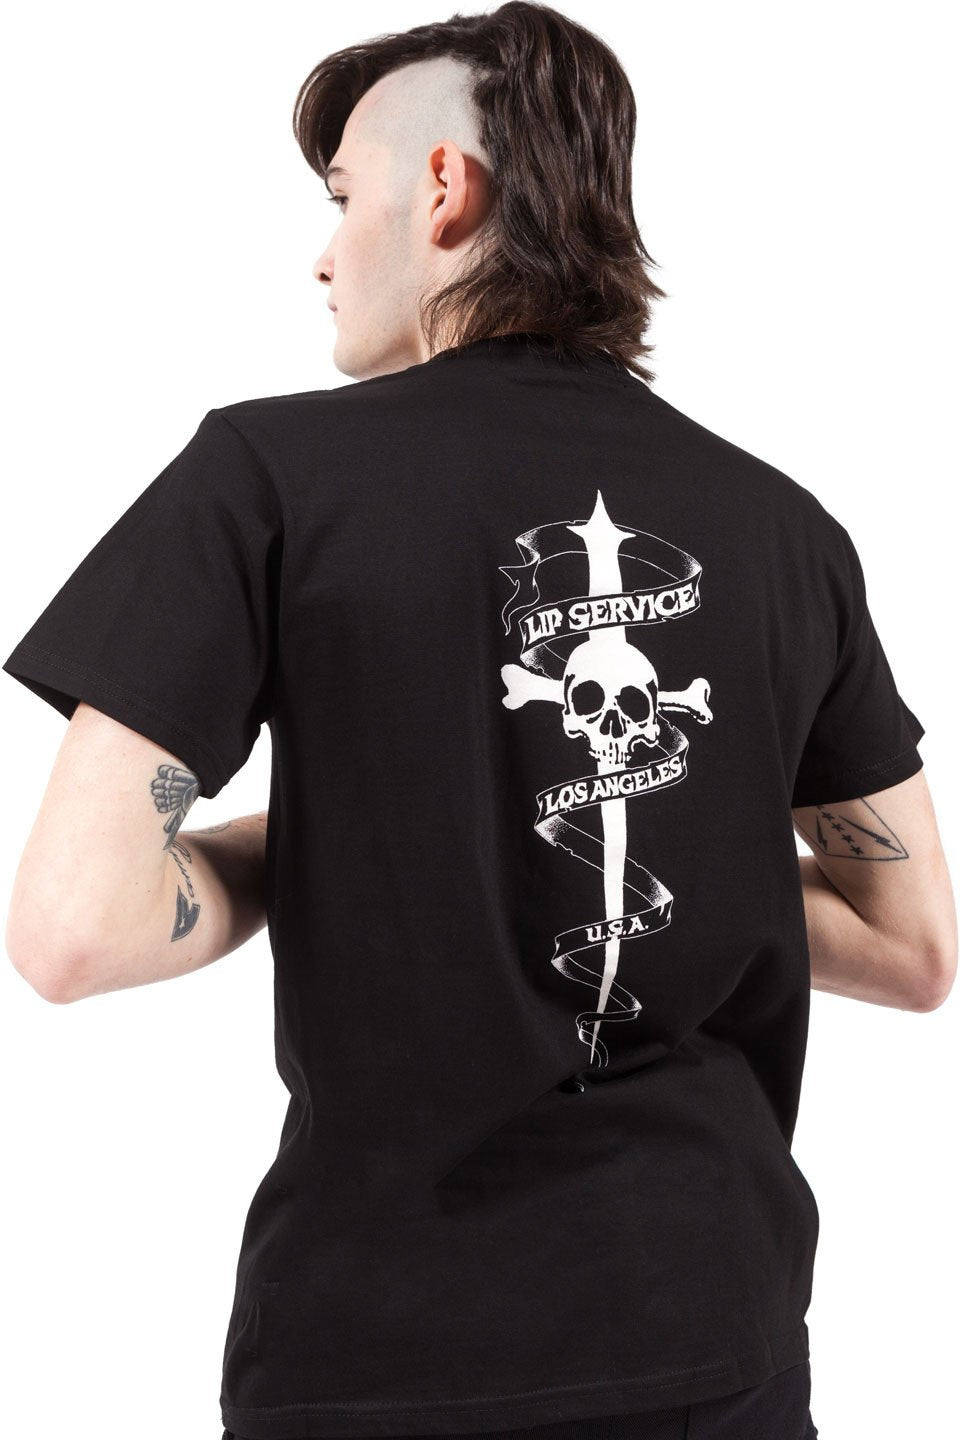 Cross Bones T-shirt-Tops-Lip Service